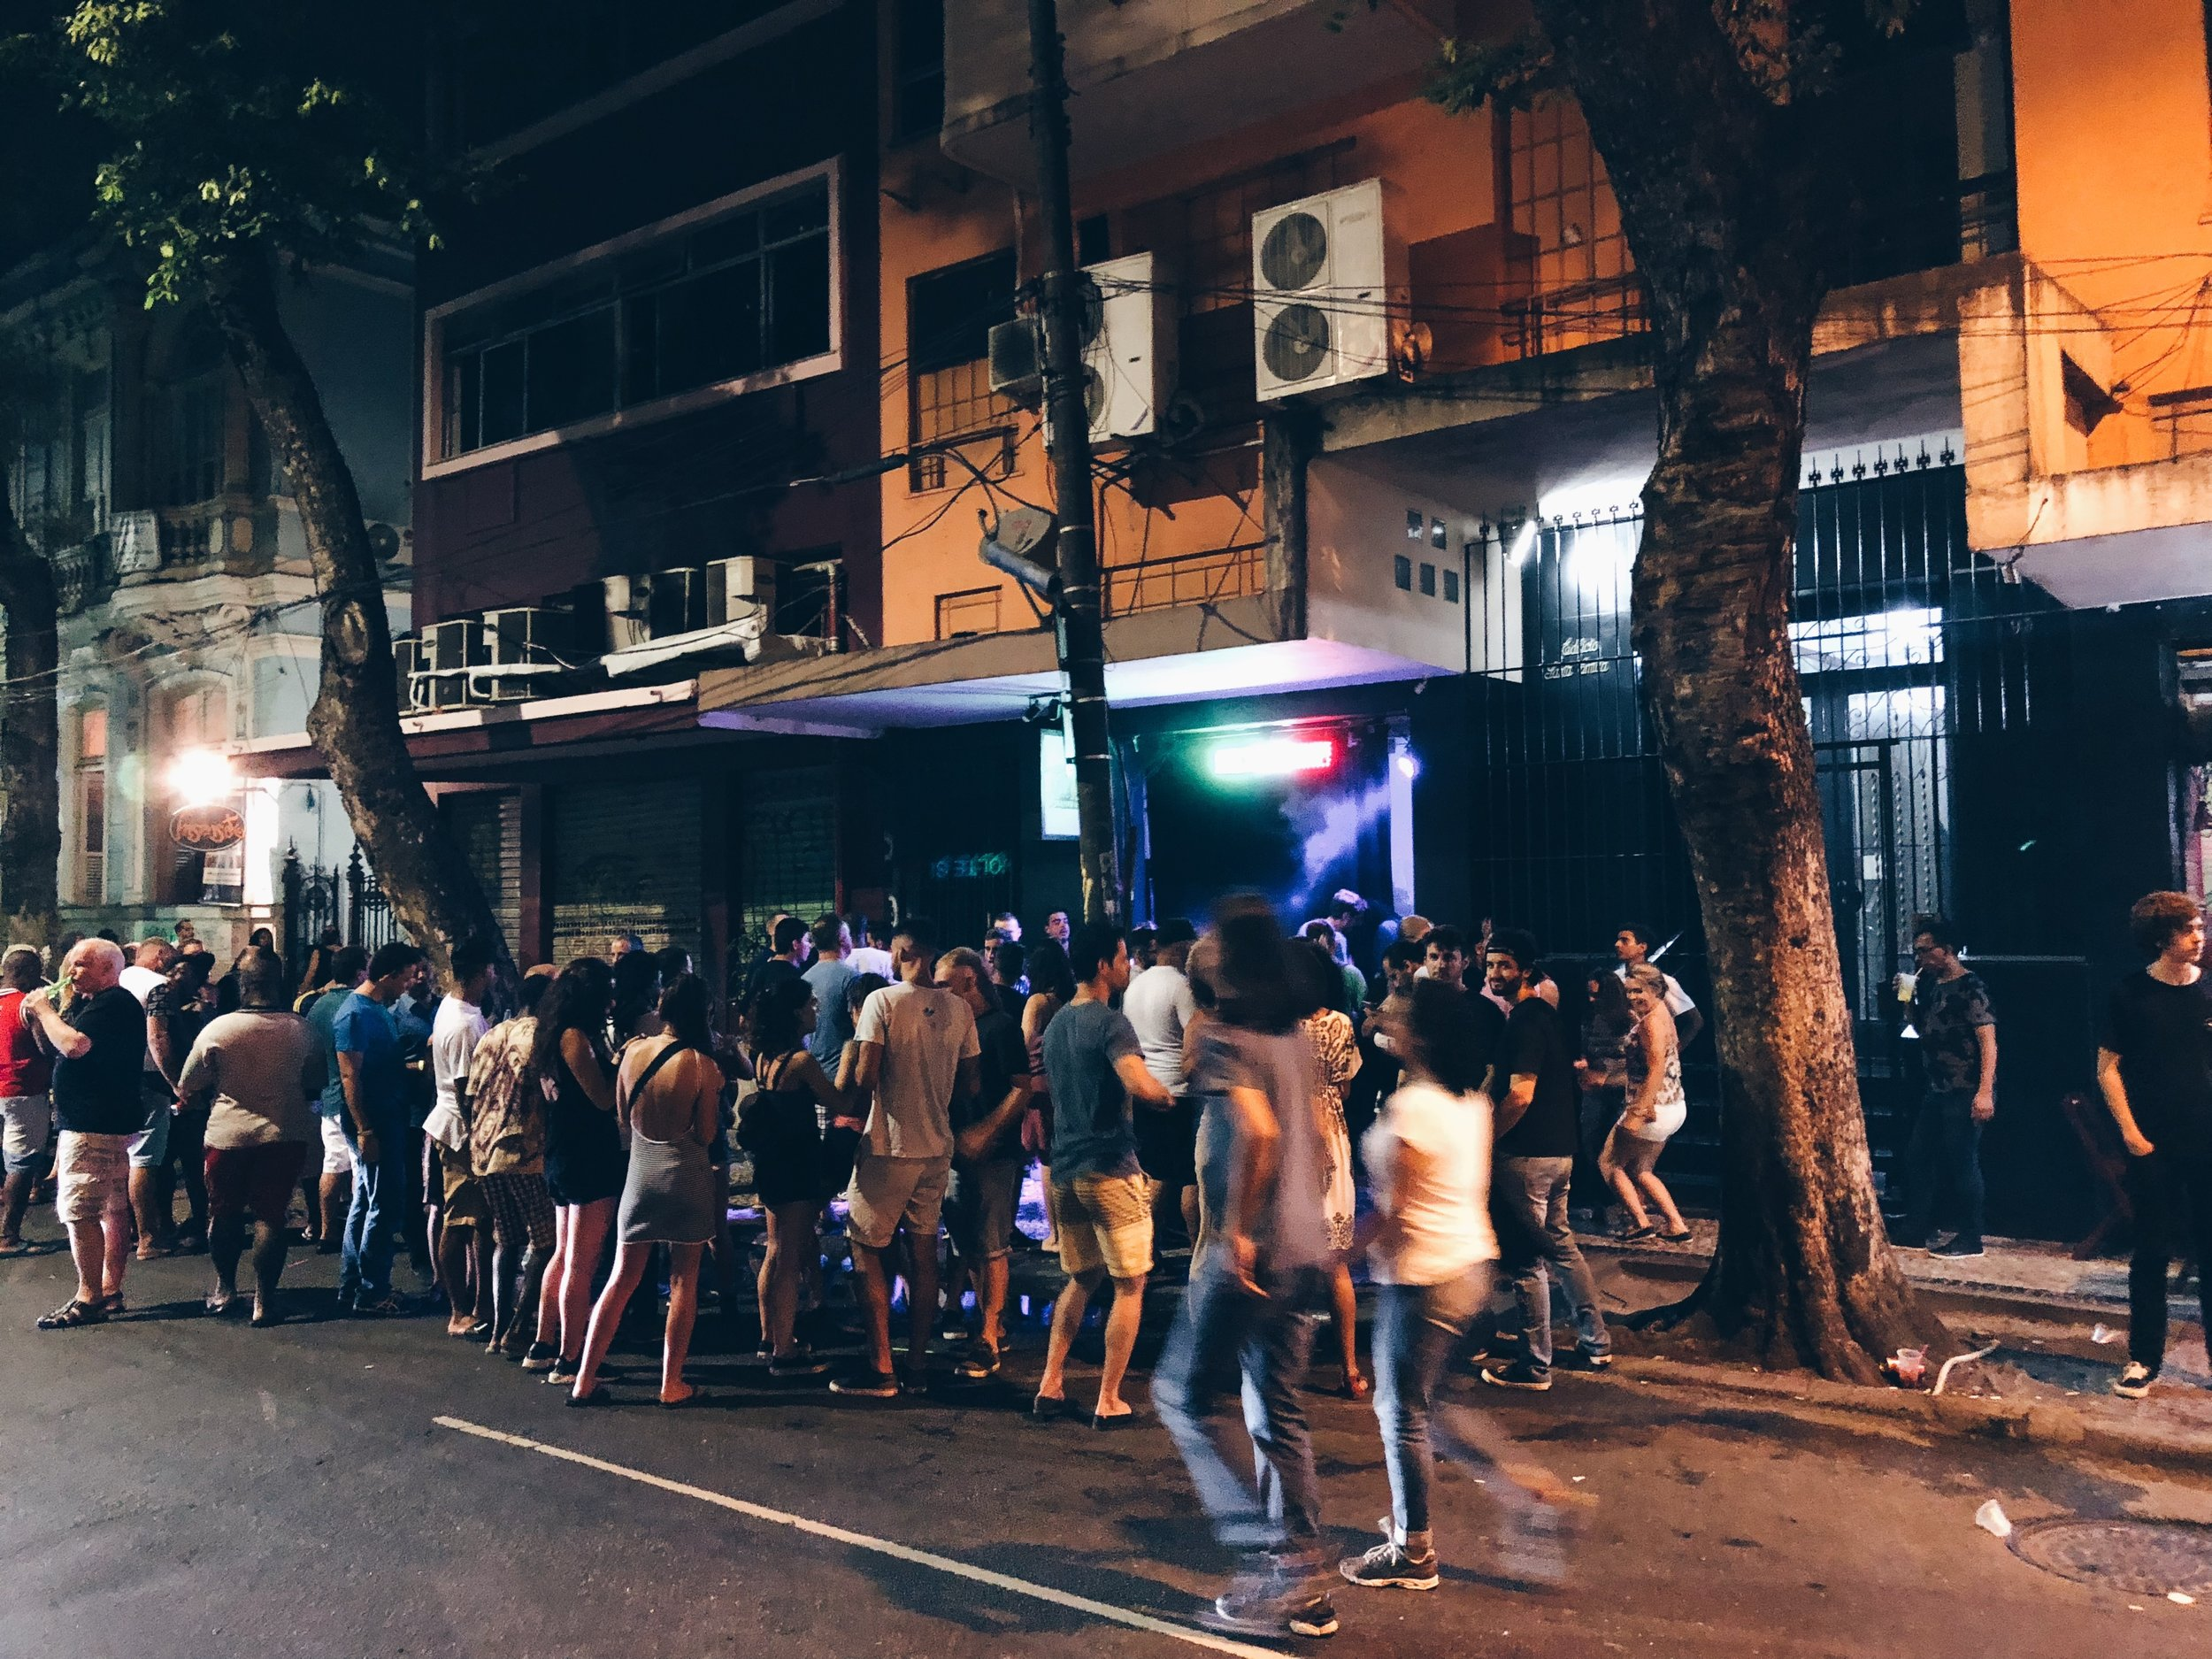 Nightlife in Lapa